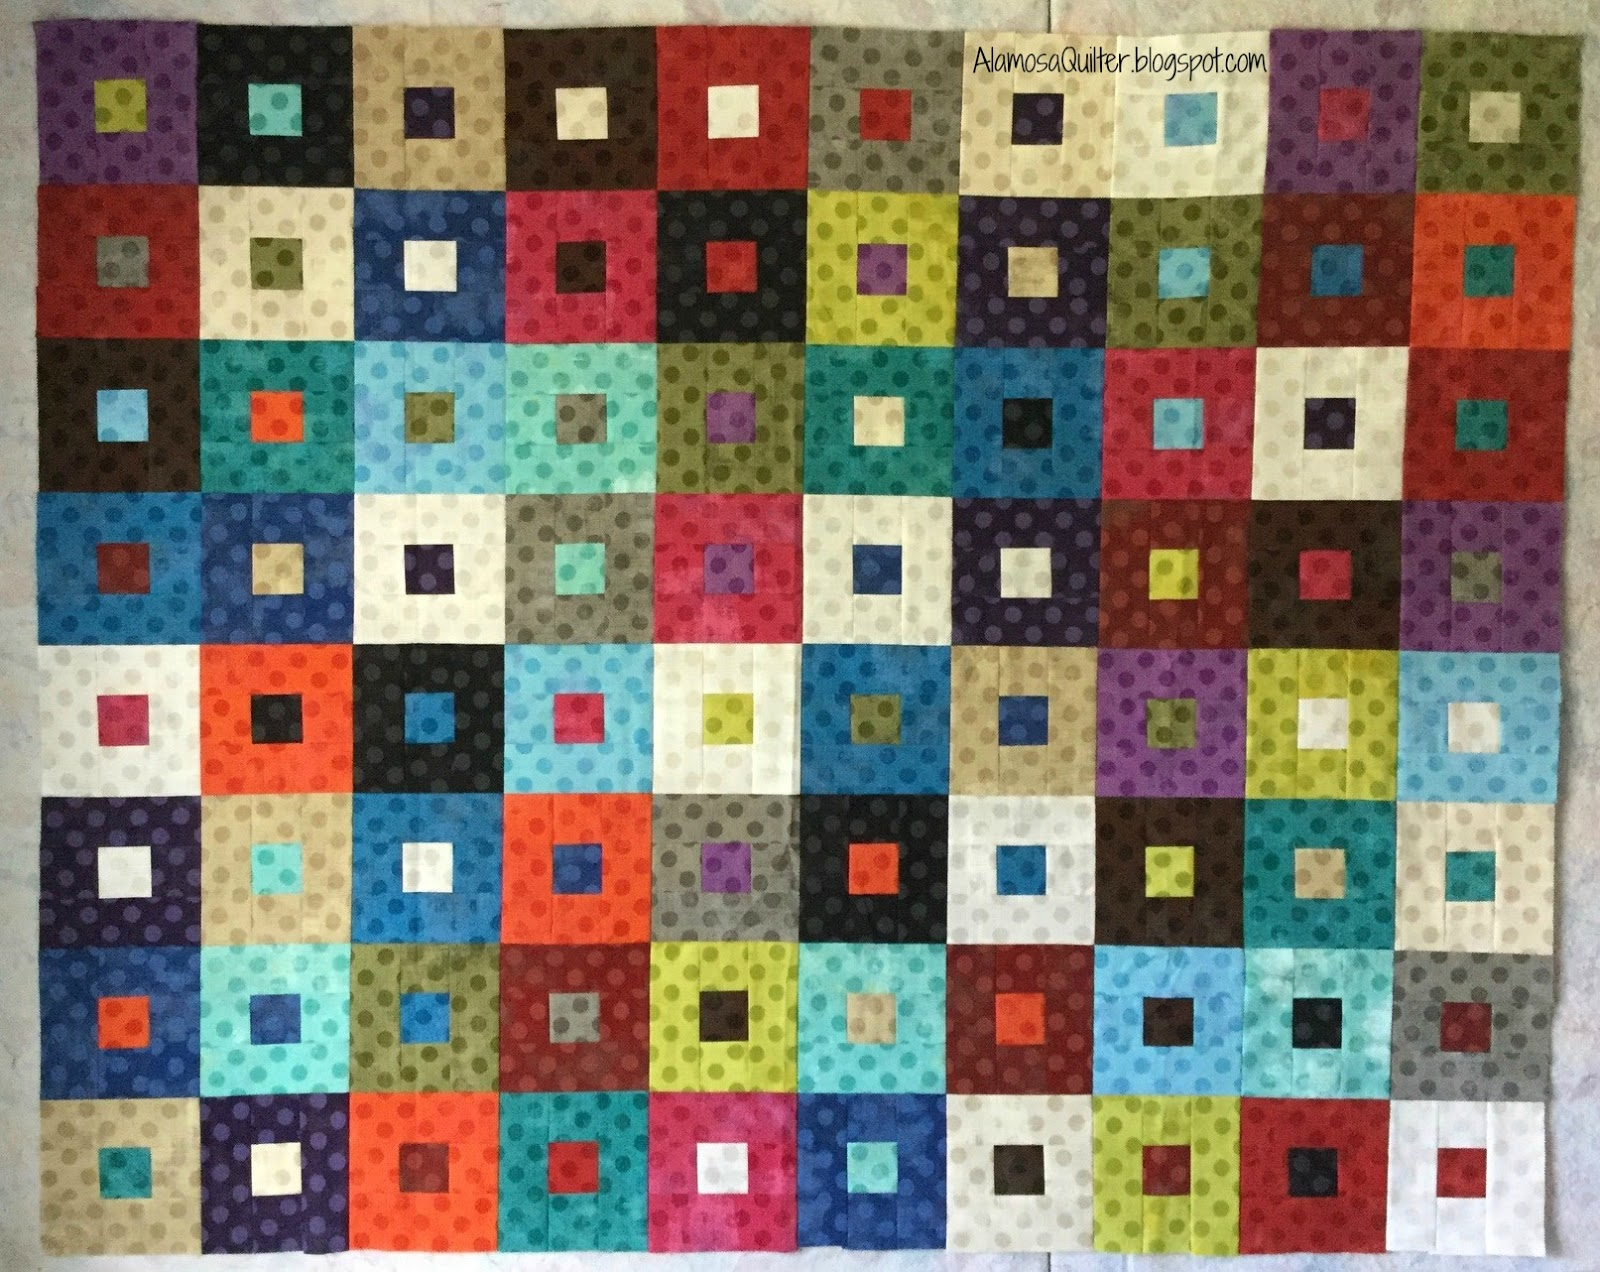 Alamosa Quilter: Jiffy Jelly Roll Grunge Dots Quilt Top : jelly roll quilts - Adamdwight.com